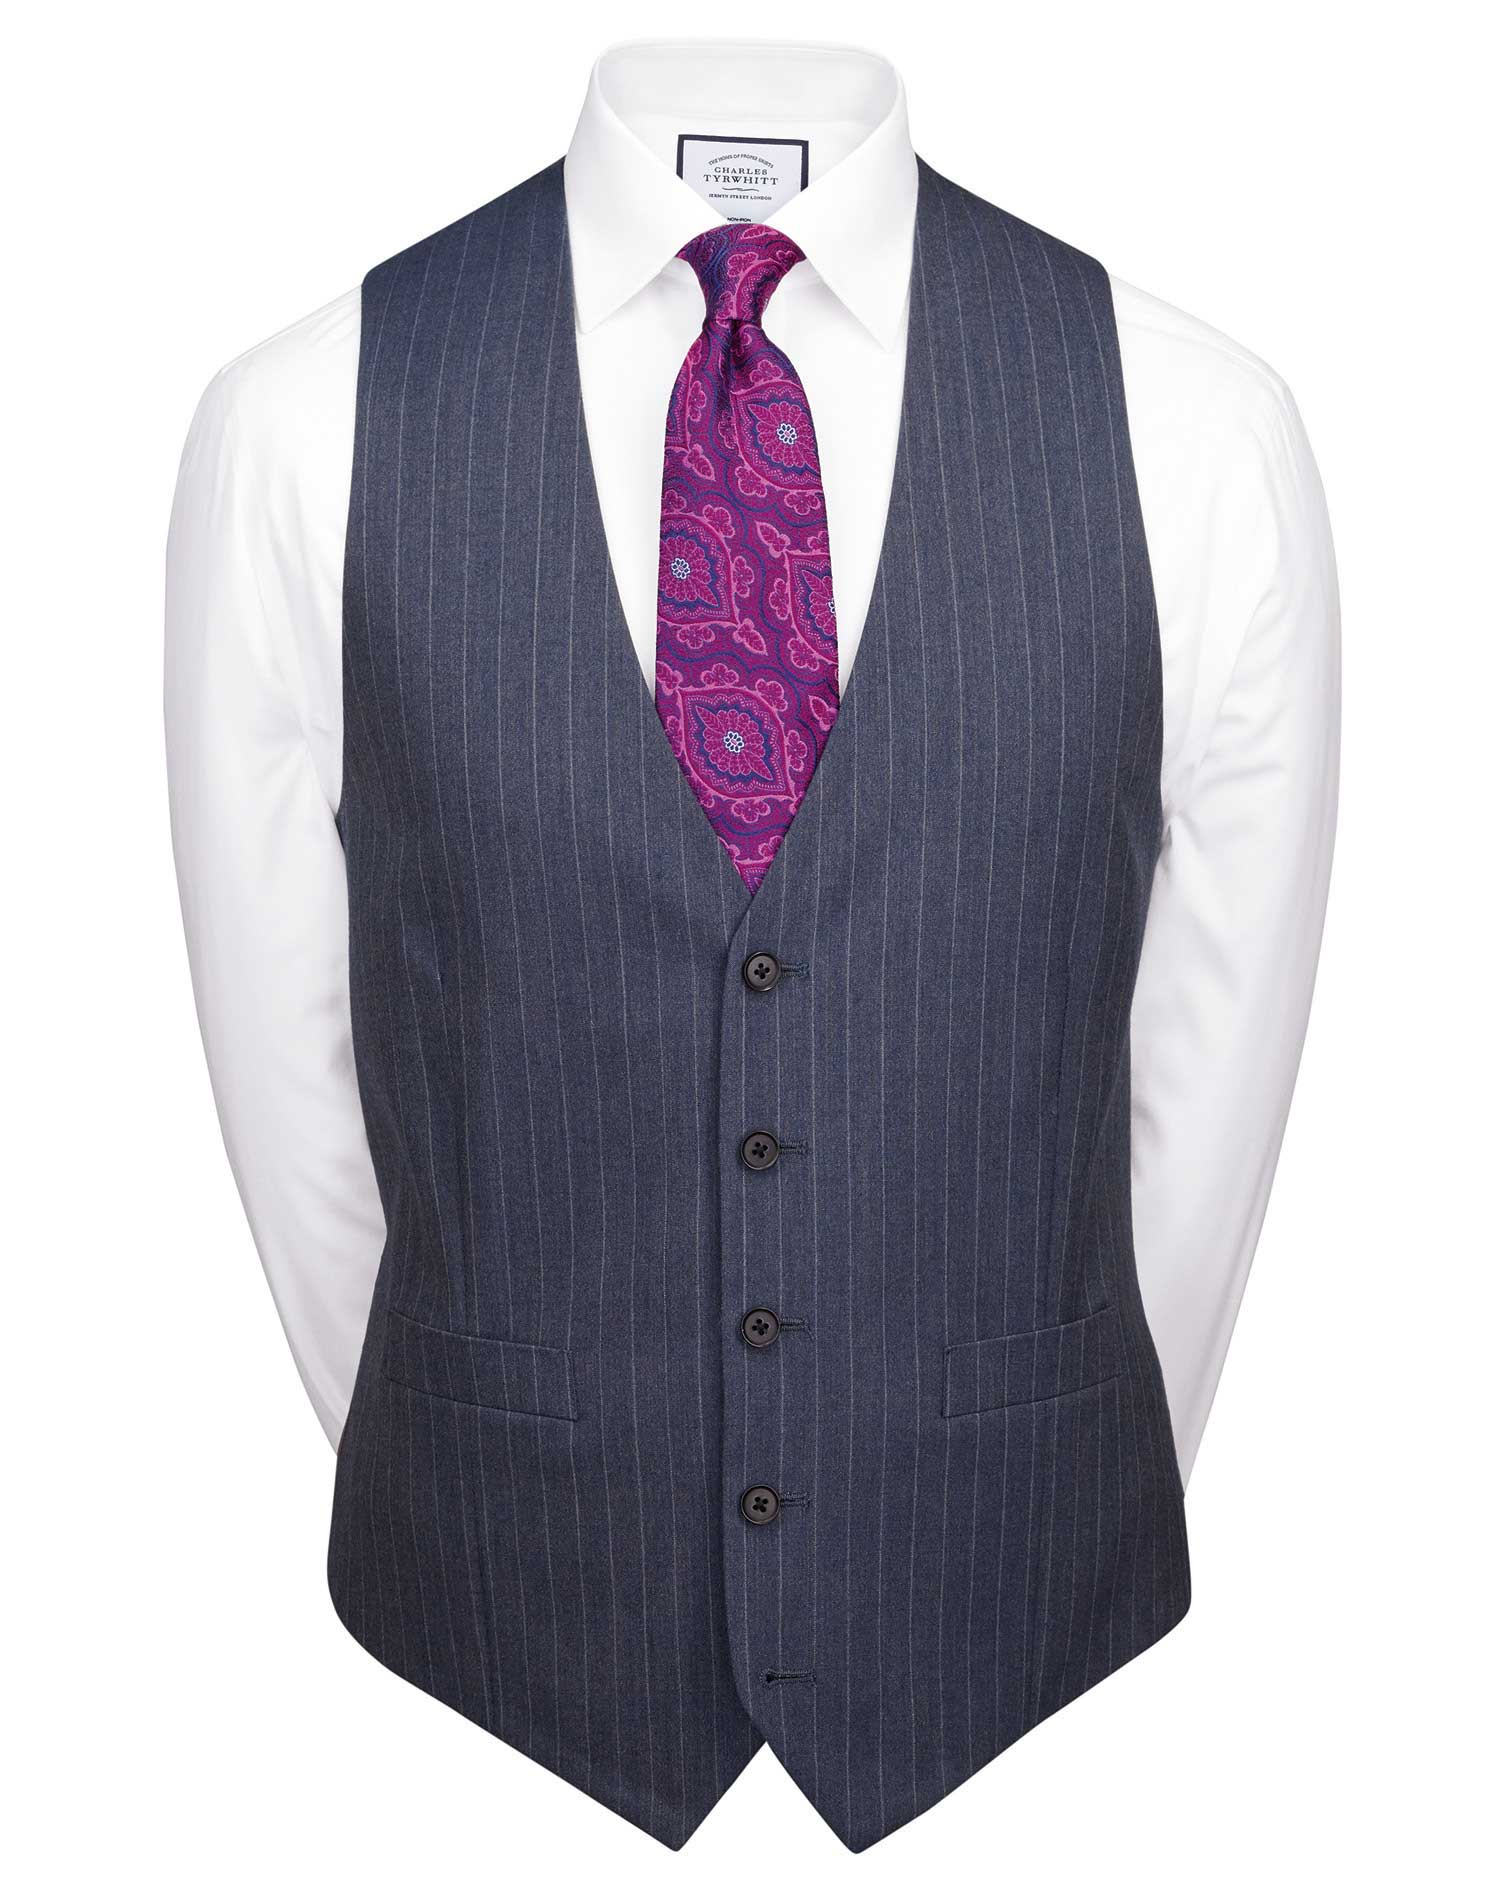 Airforce Stripe Slim Fit Panama Business Suit Wool Waistcoat Size w36 by Charles Tyrwhitt